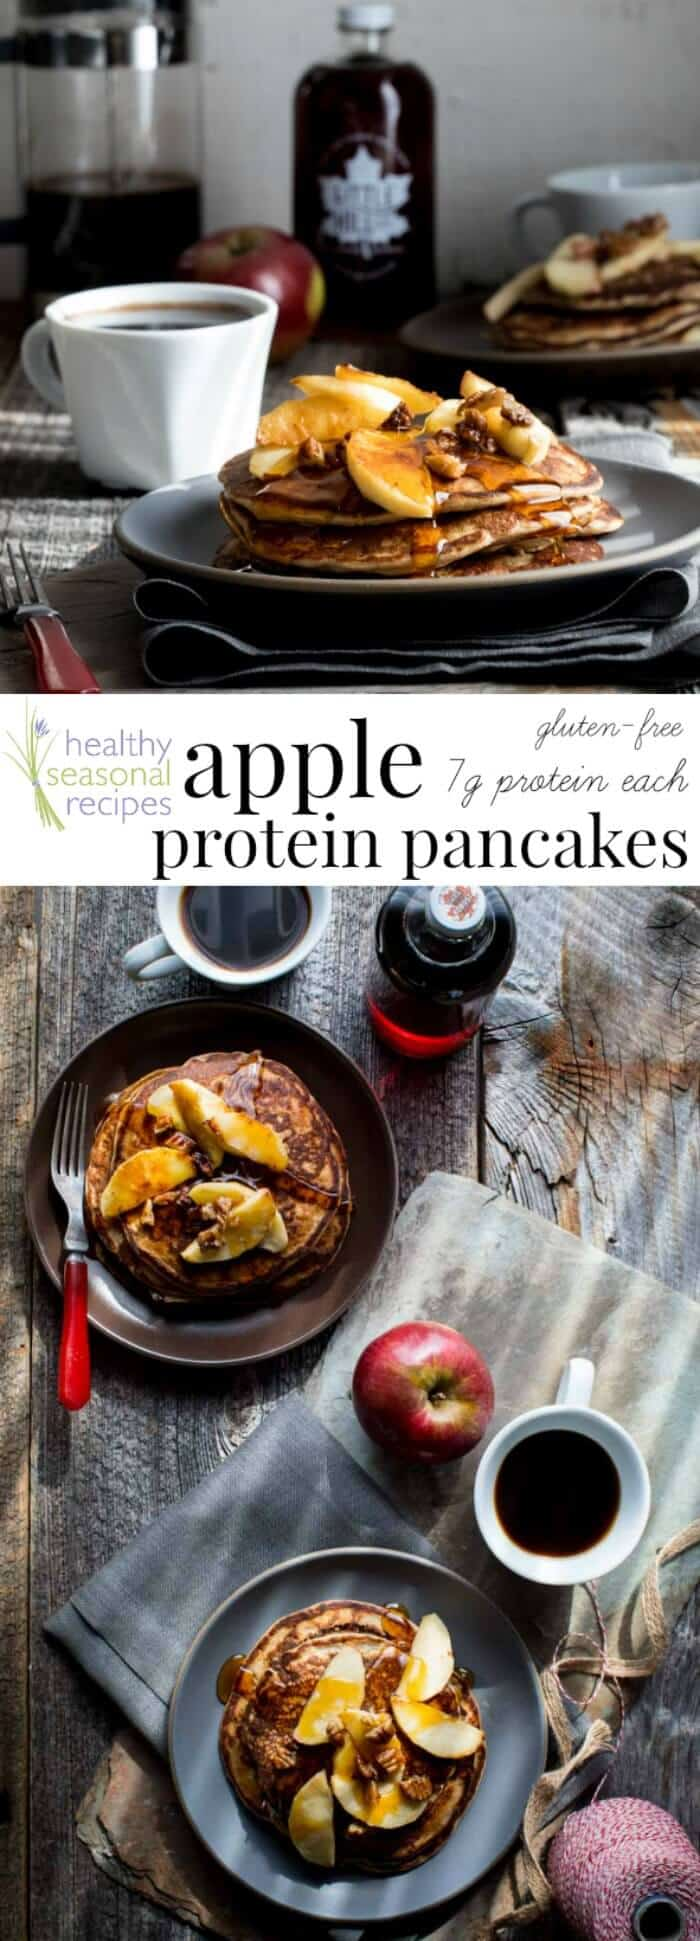 Behold, fall on a plate! These gluten-free Apple Protein Pancakes are going to be on your breakfast table for the entire fall season. Mark my words. They are made with oats, cottage cheese, eggs, and apples! You would never guess they don\'t have any flour in them! They\'re 106 calories each and have 7 grams protein each. #proteinpancakes #apples #breakfast #pancakes